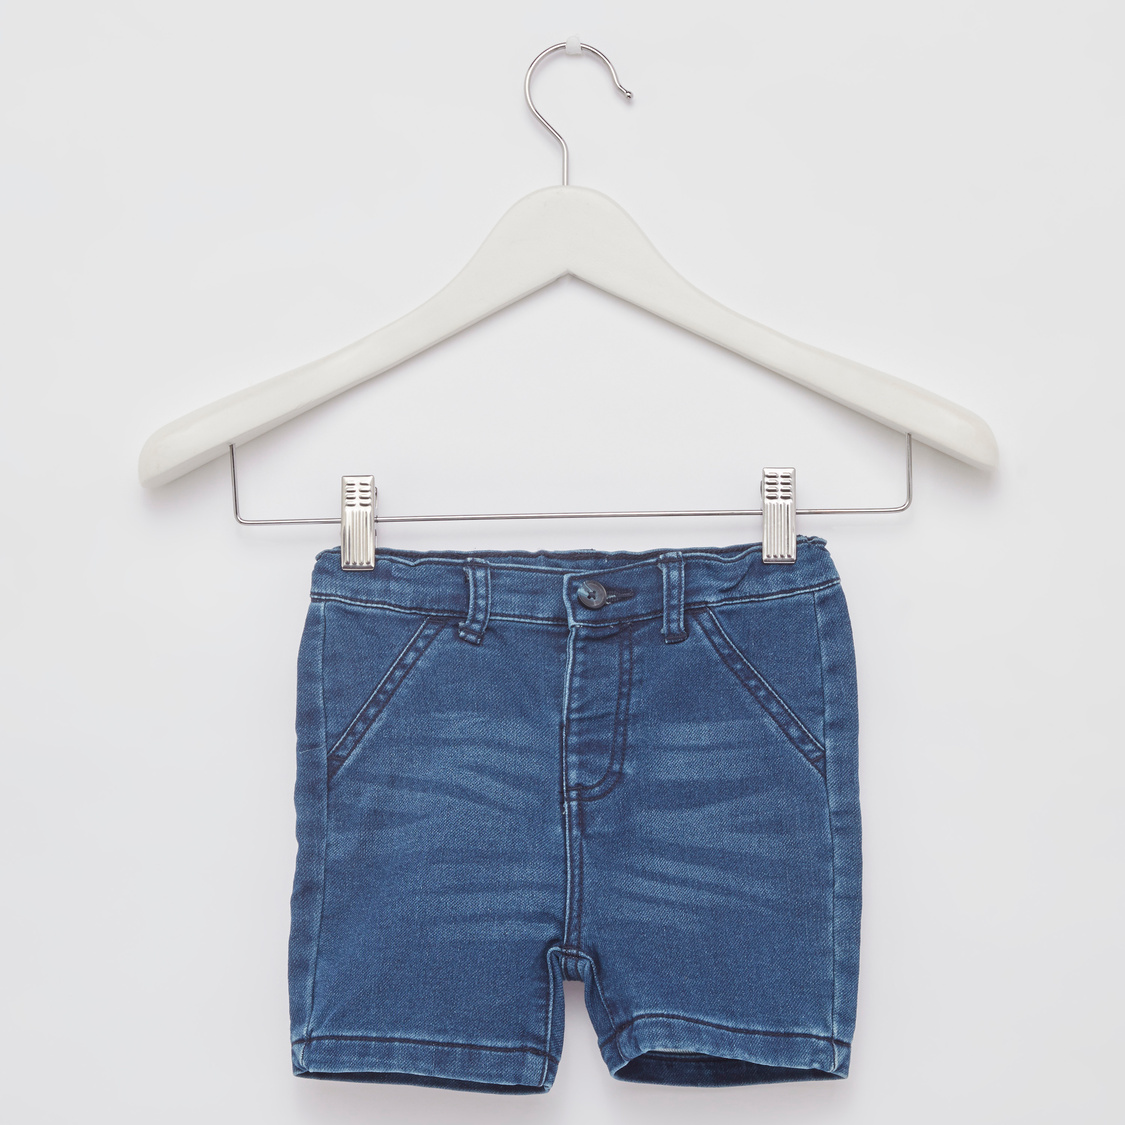 Checked Short Sleeves Shirt with Denim Shorts